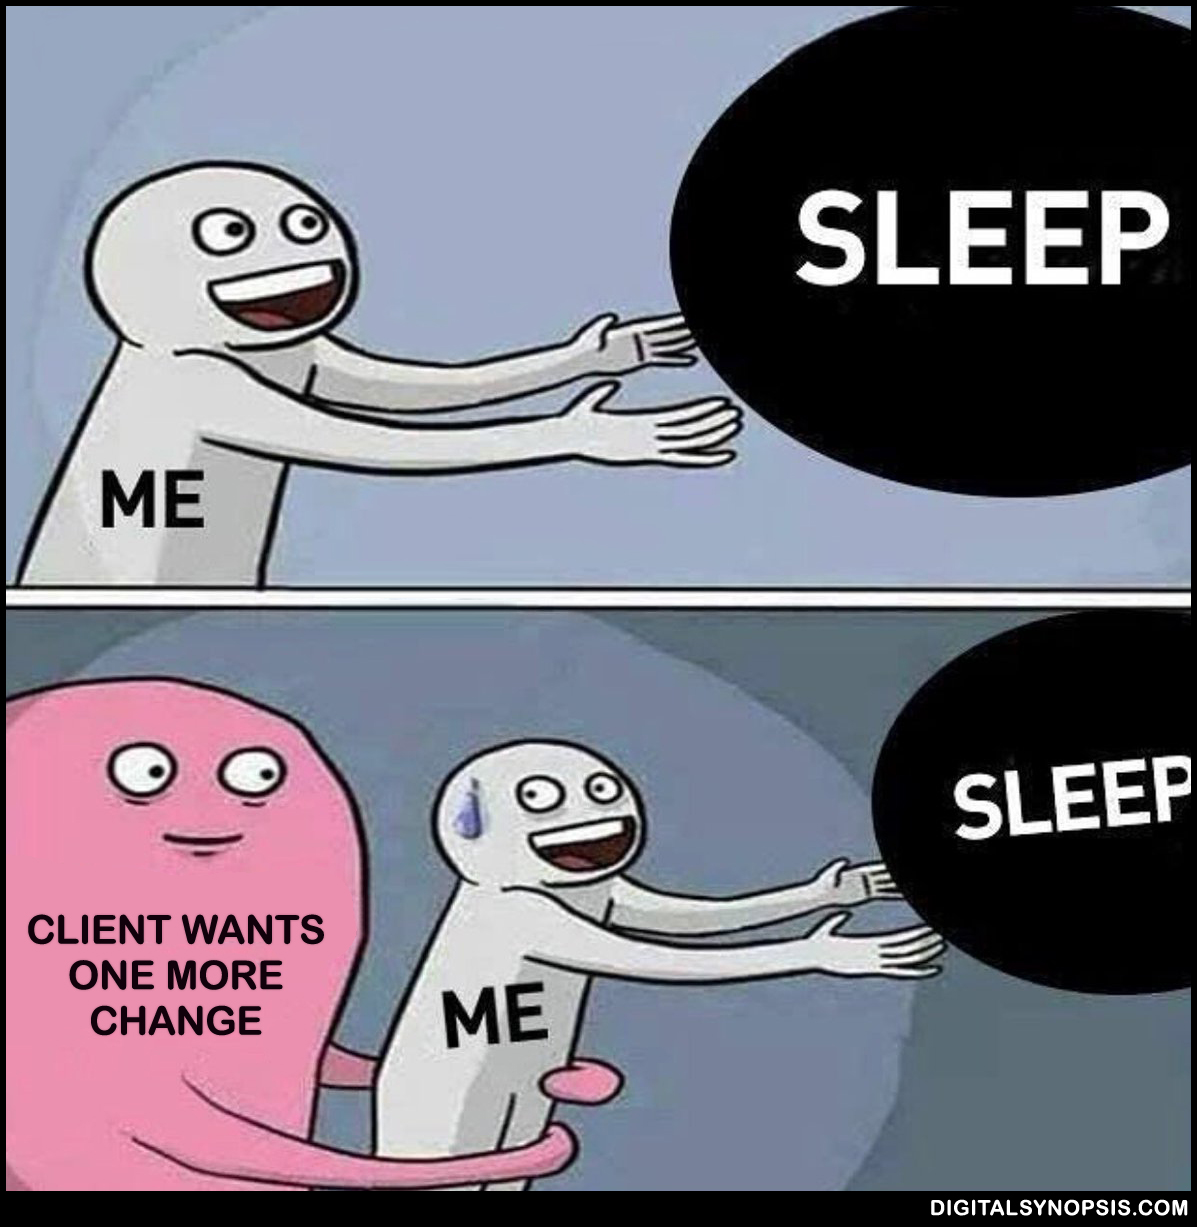 Sleep vs. Client wants one more change